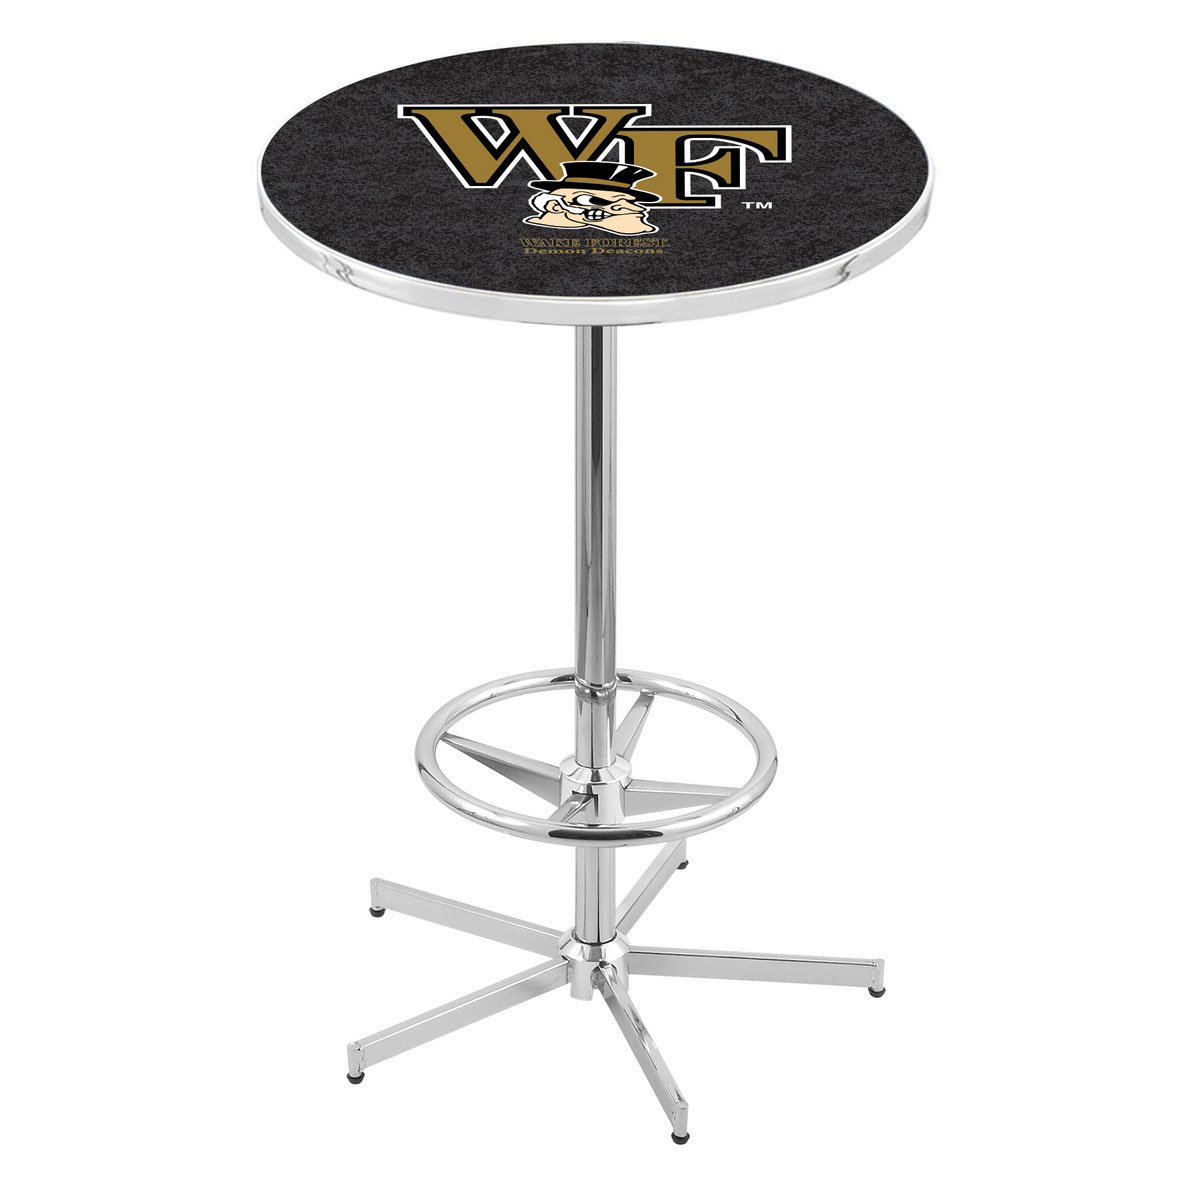 Amazing Chrome Wake Forest Pub Table Product Photo